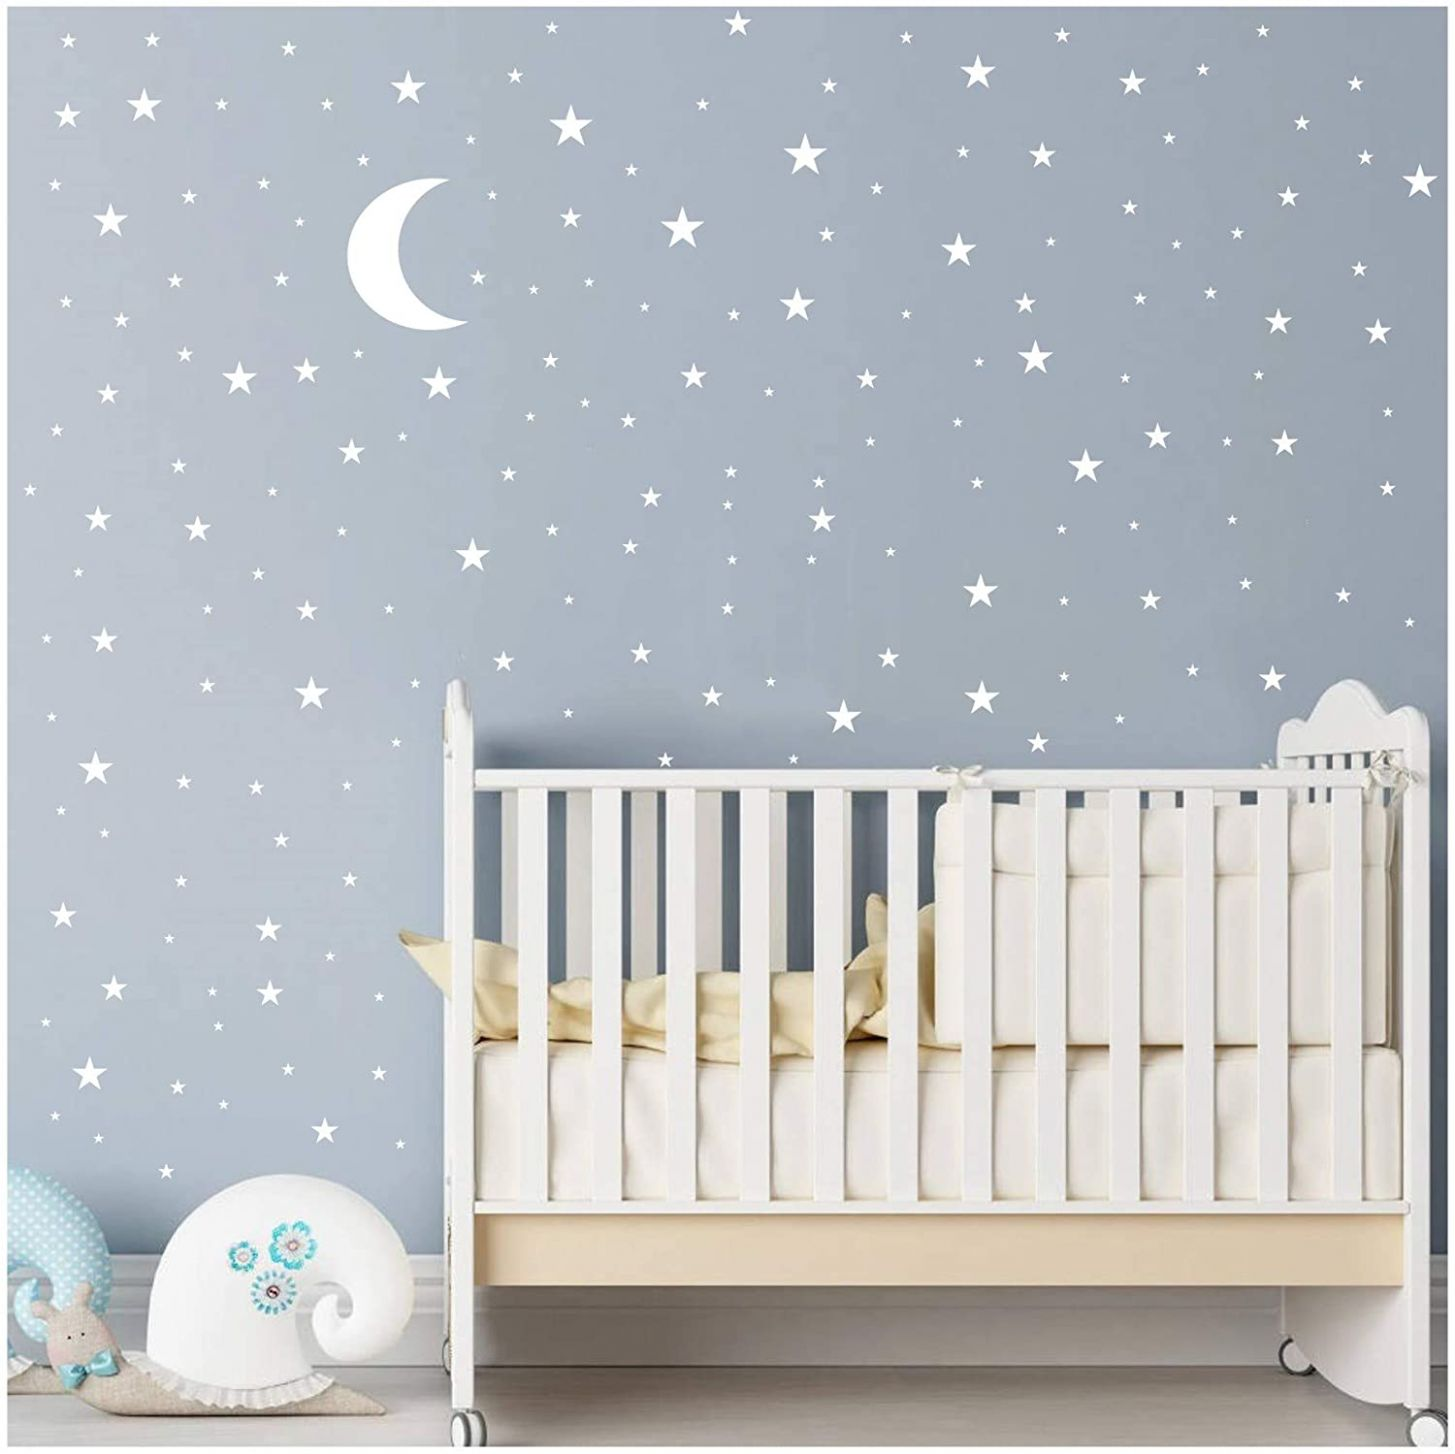 Moon and Stars Wall Decal Vinyl Sticker for Kids Boy Girls Baby Room  Decoration Good Night Nursery Wall Decor Home House Bedroom Design YMX11  (White) - baby room decoration